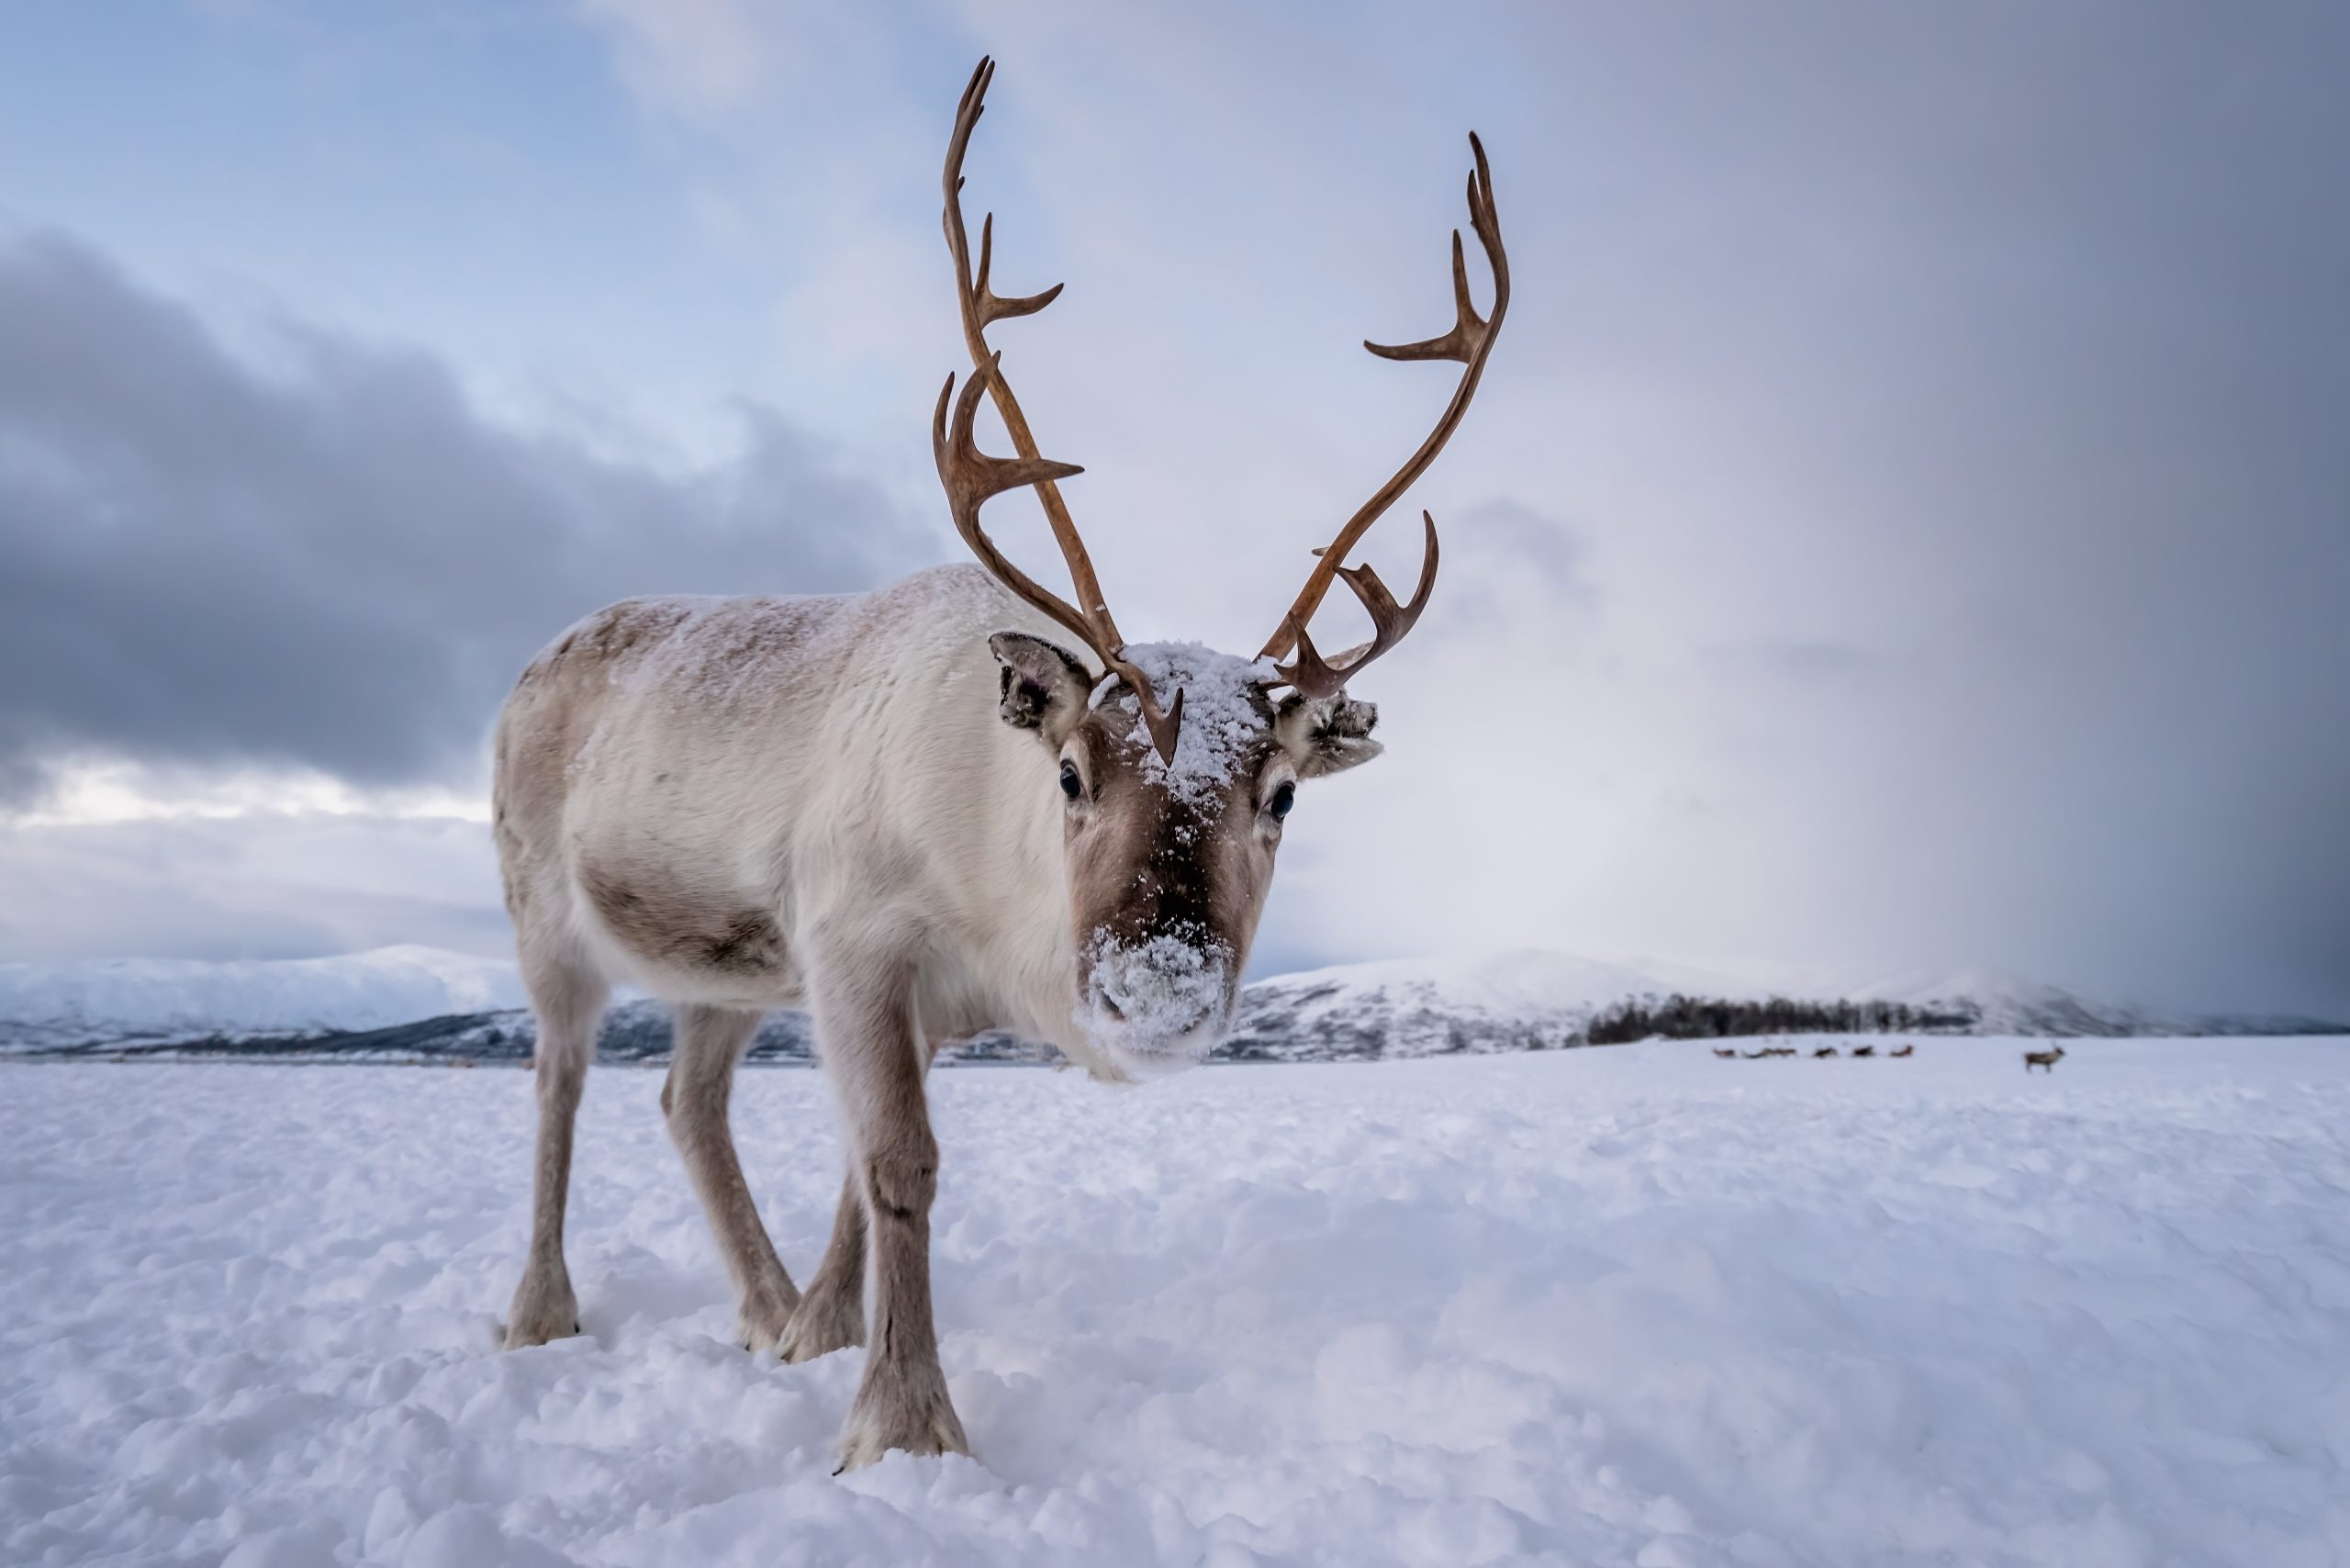 Portrait of a reindeer with massive antlers pulling sleigh in snow, Tromso region, Northern Norway